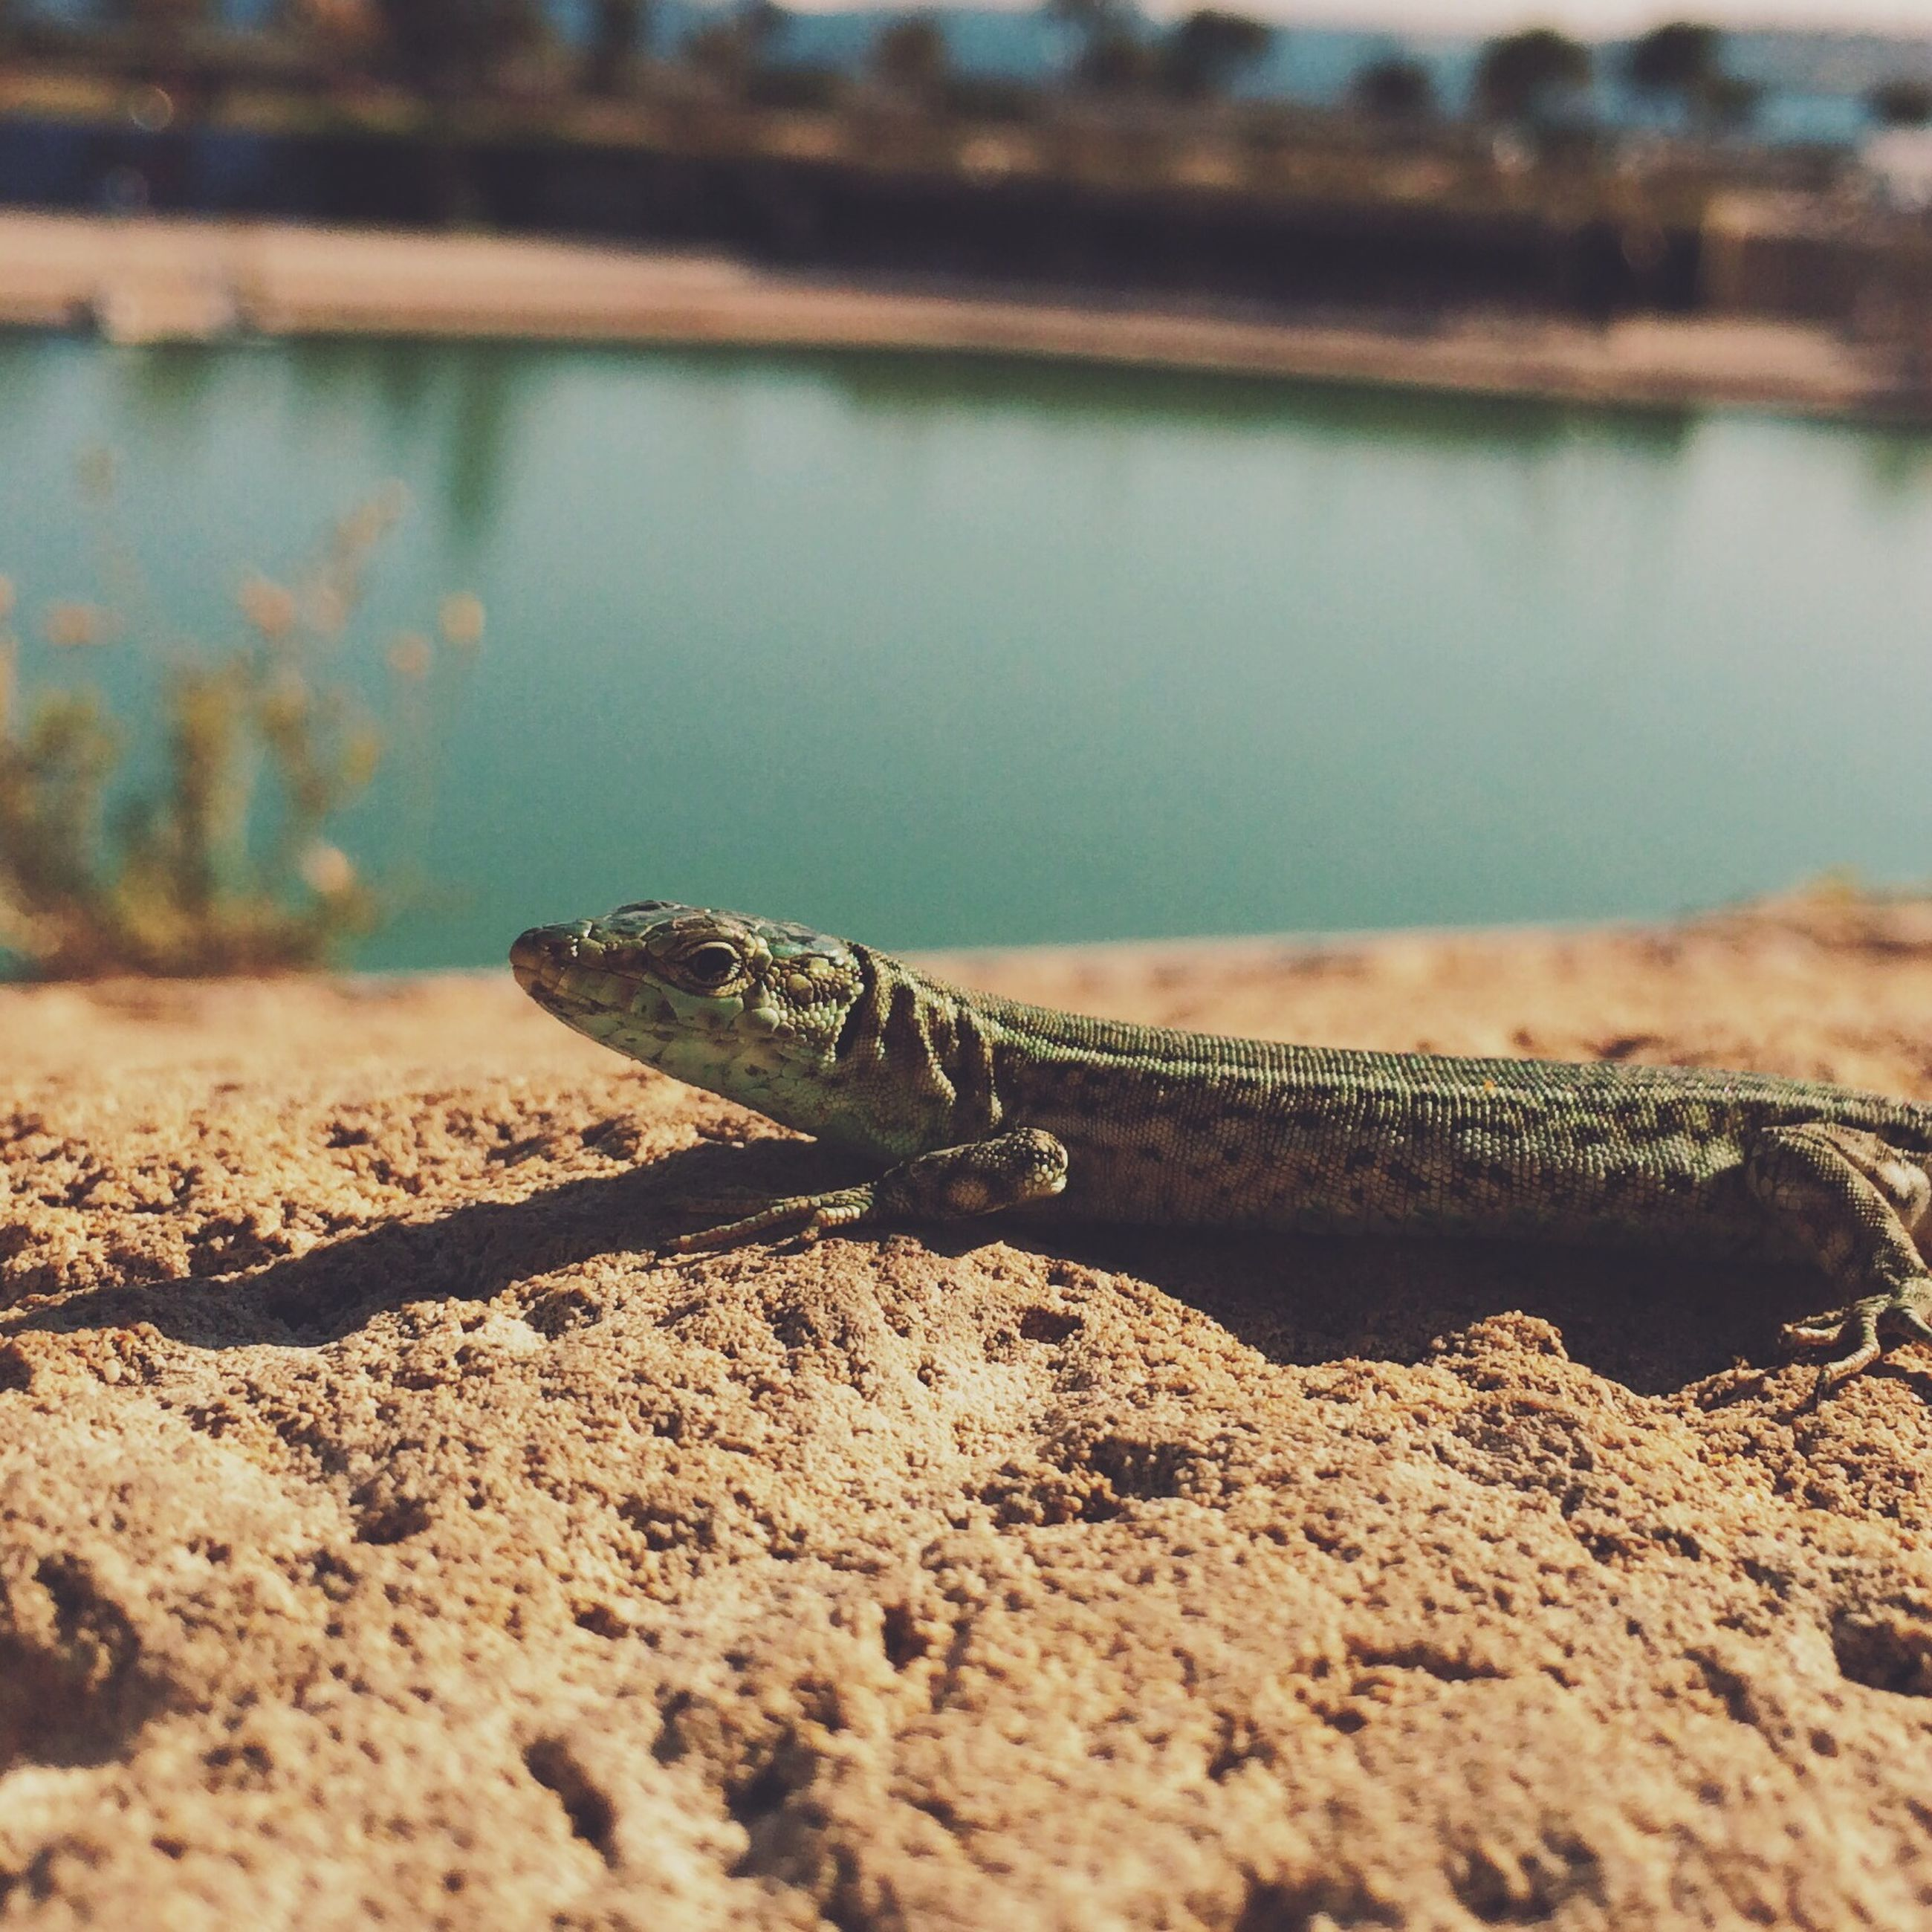 one animal, animal themes, animals in the wild, wildlife, focus on foreground, close-up, selective focus, water, beach, reptile, nature, outdoors, sand, rusty, day, sea, no people, shore, rock - object, abandoned